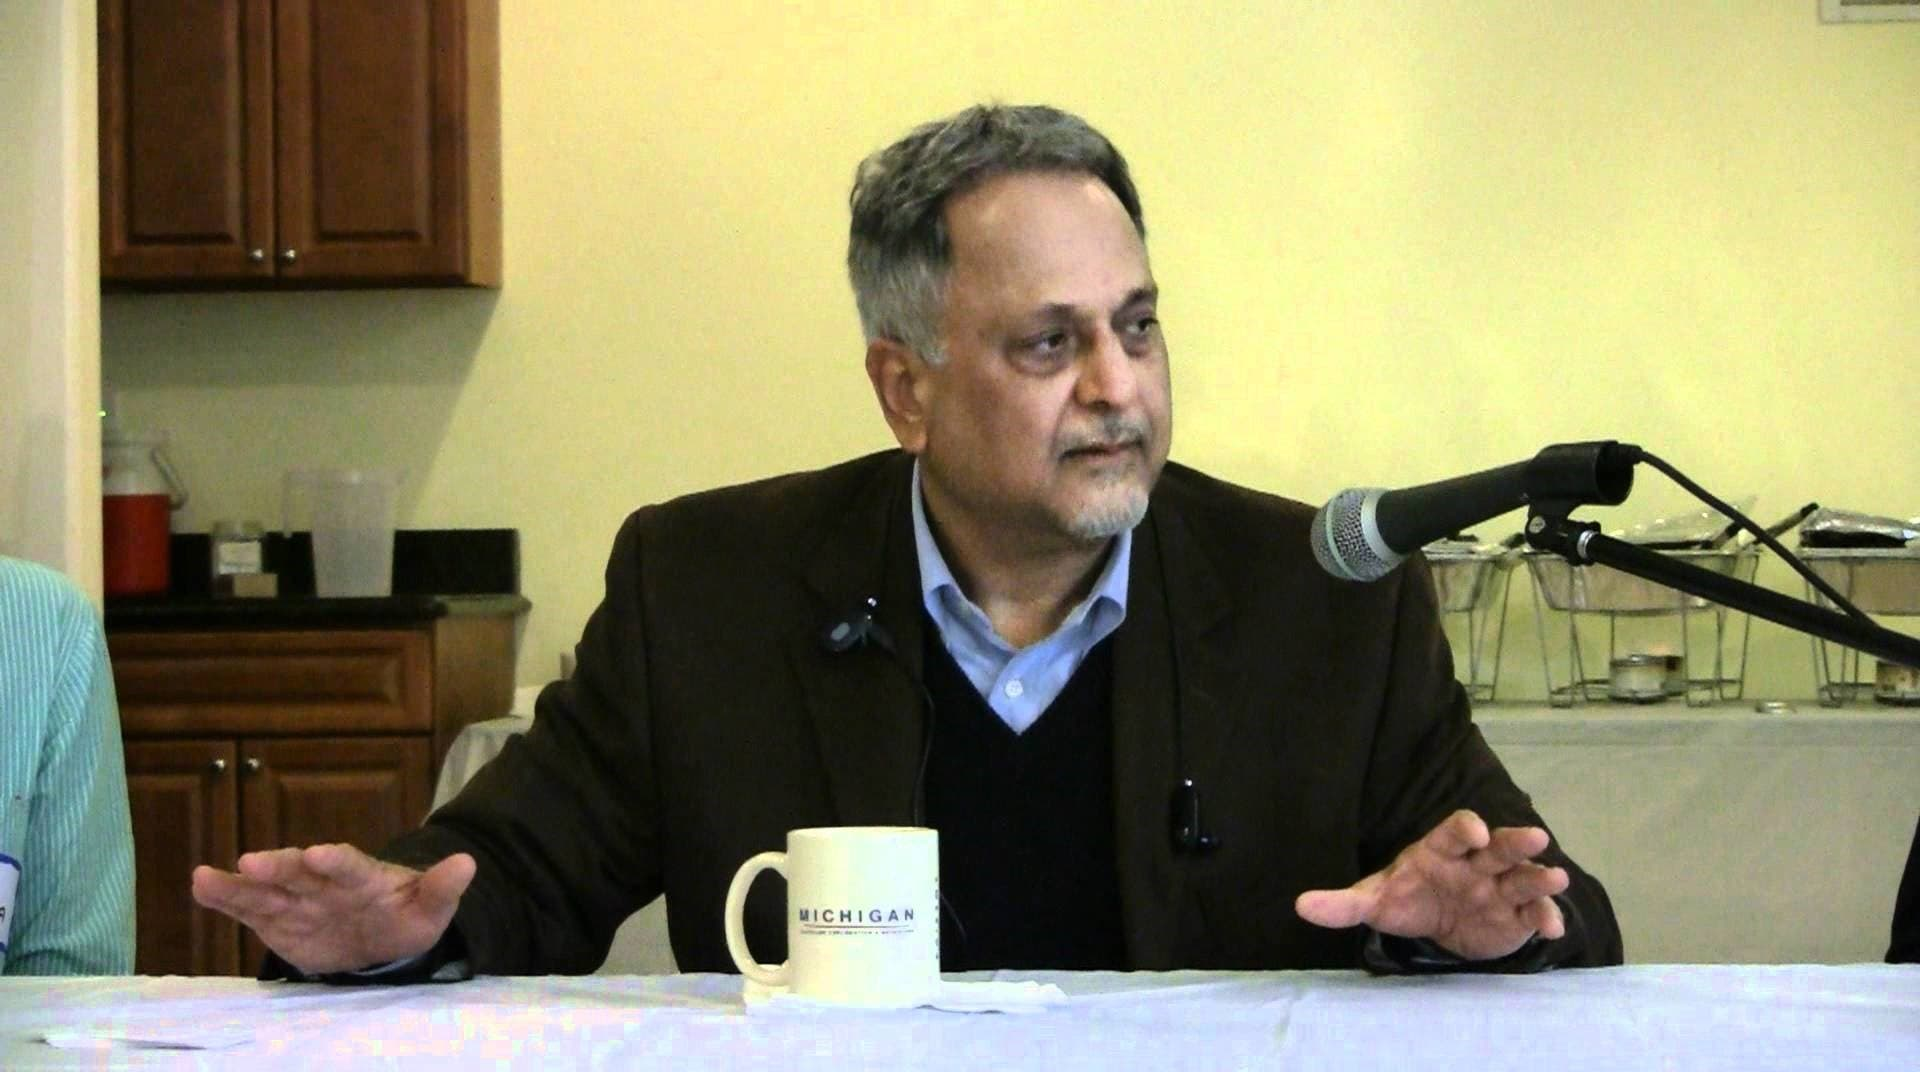 Bharat Karnad is outspoken and devastatingly critical of Modi's handling of India's foreign policy